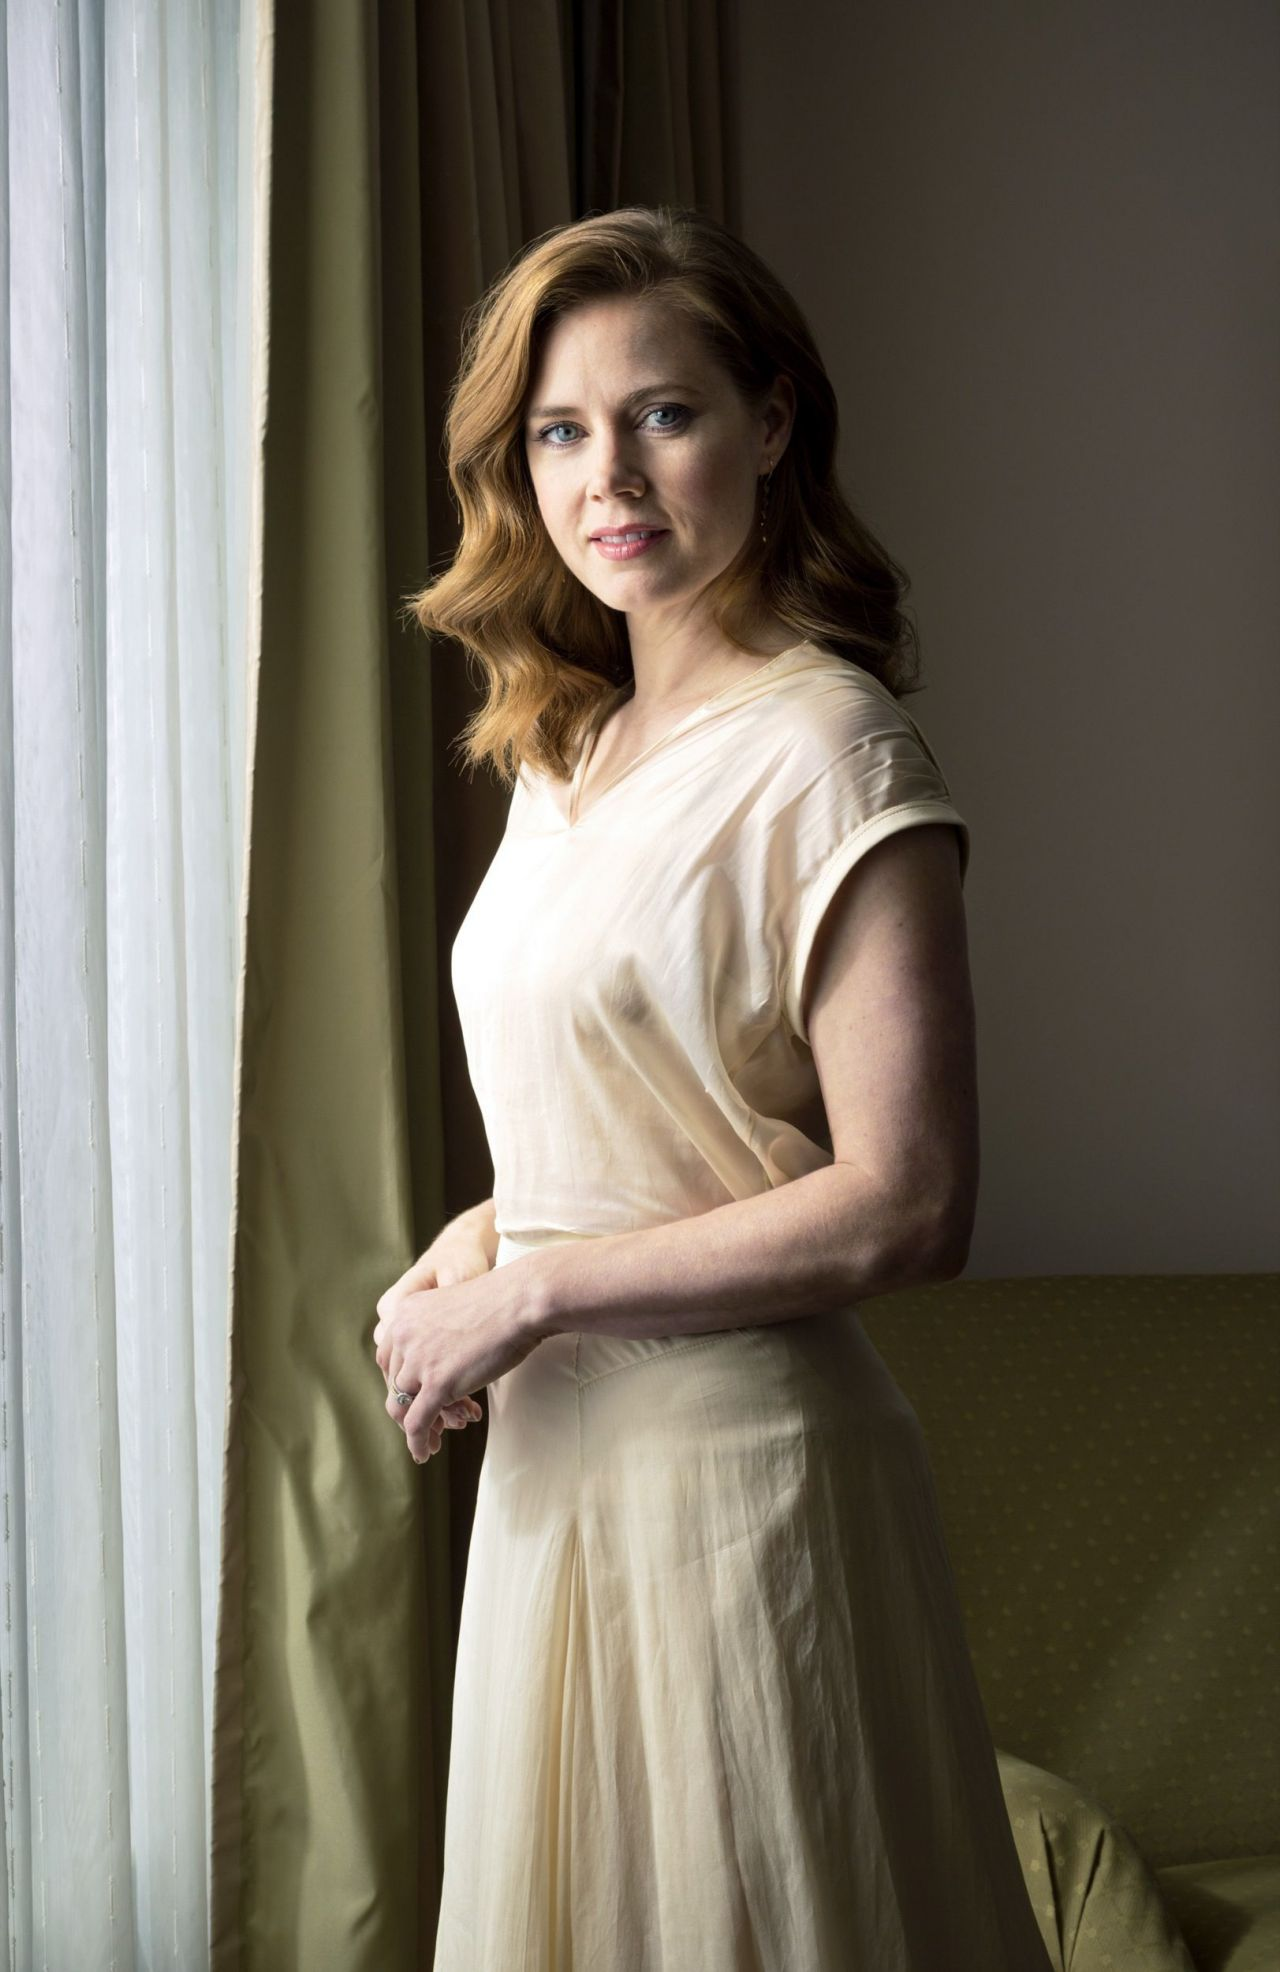 amy-adams-new-york-times-photoshoot-may-